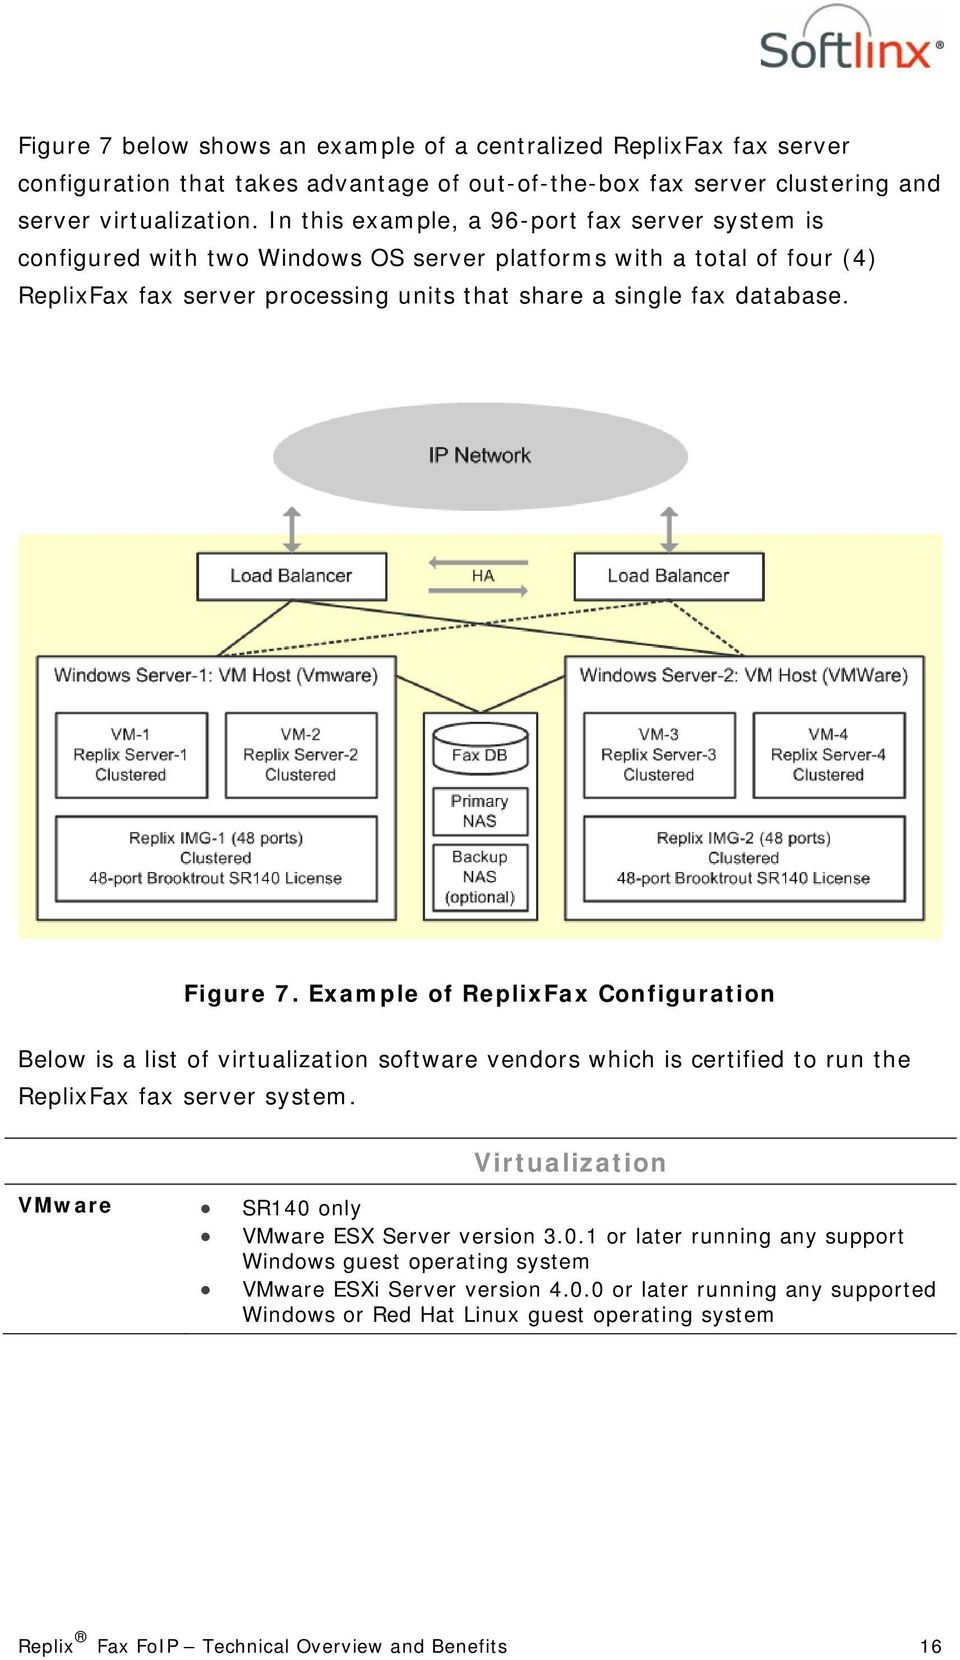 Figure 7. Example of ReplixFax Configuration Below is a list of virtualization software vendors which is certified to run the ReplixFax fax server system.